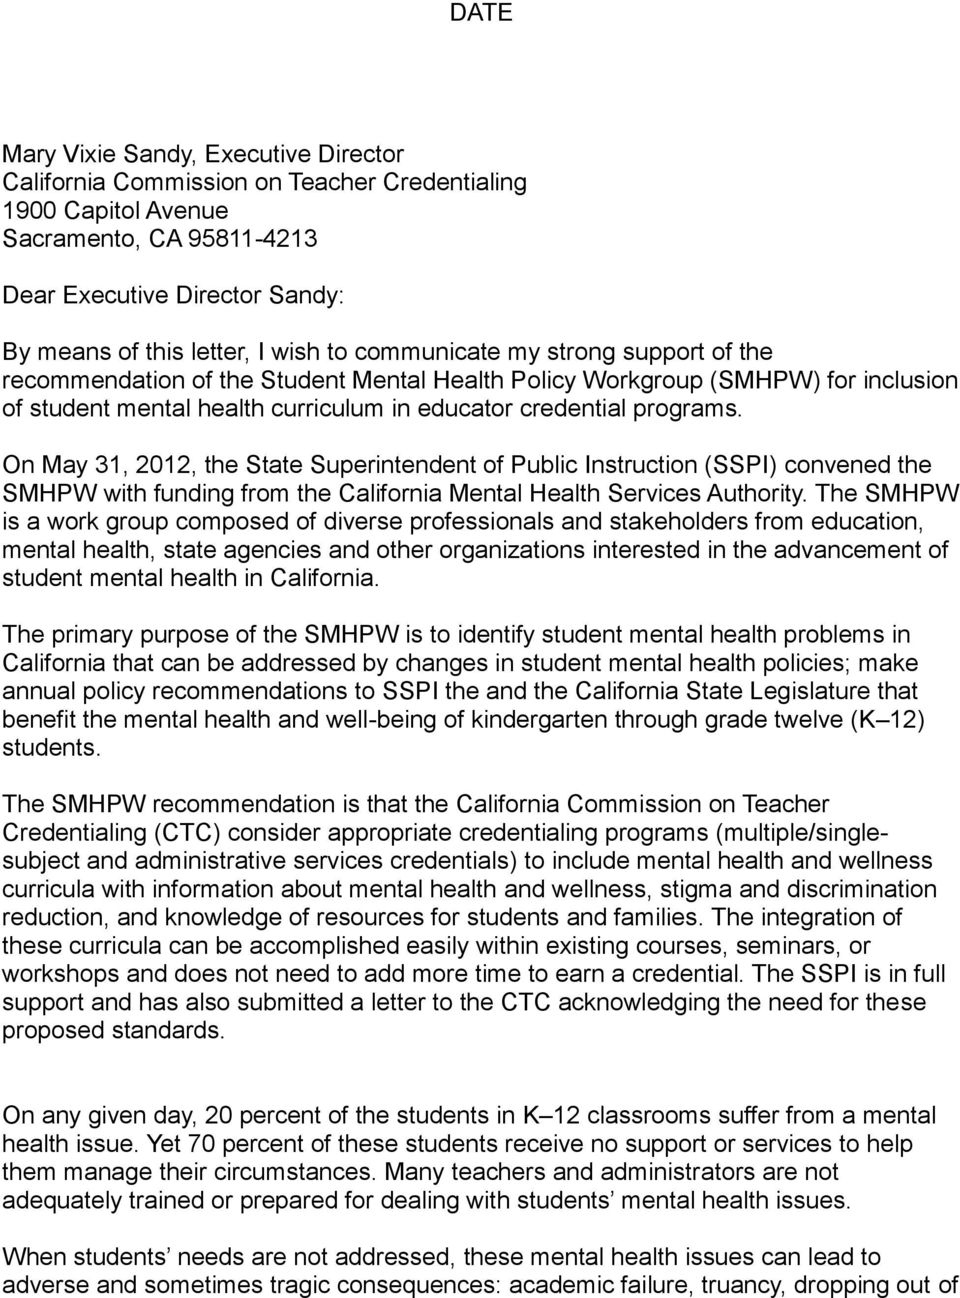 On May 31, 2012, the State Superintendent of Public Instruction (SSPI) convened the SMHPW with funding from the California Mental Health Services Authority.